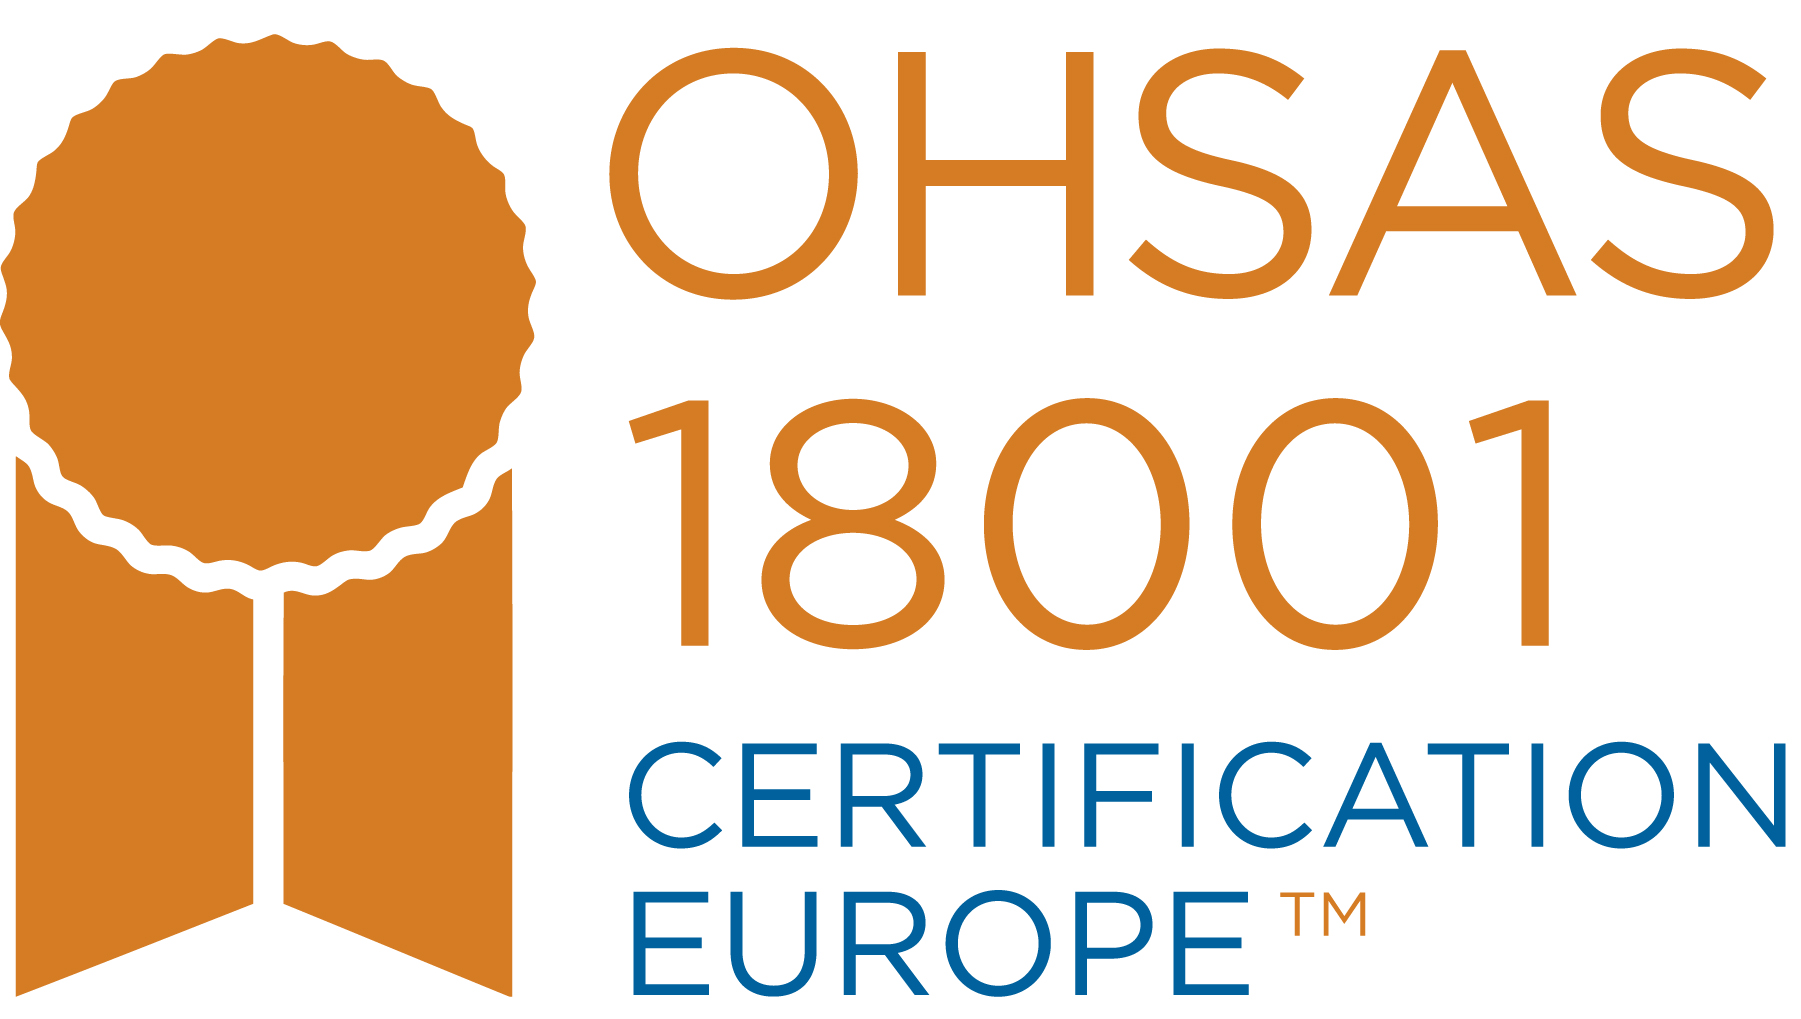 Certification Europe OHAS18001 Health & Safety Certificate for PST Sport